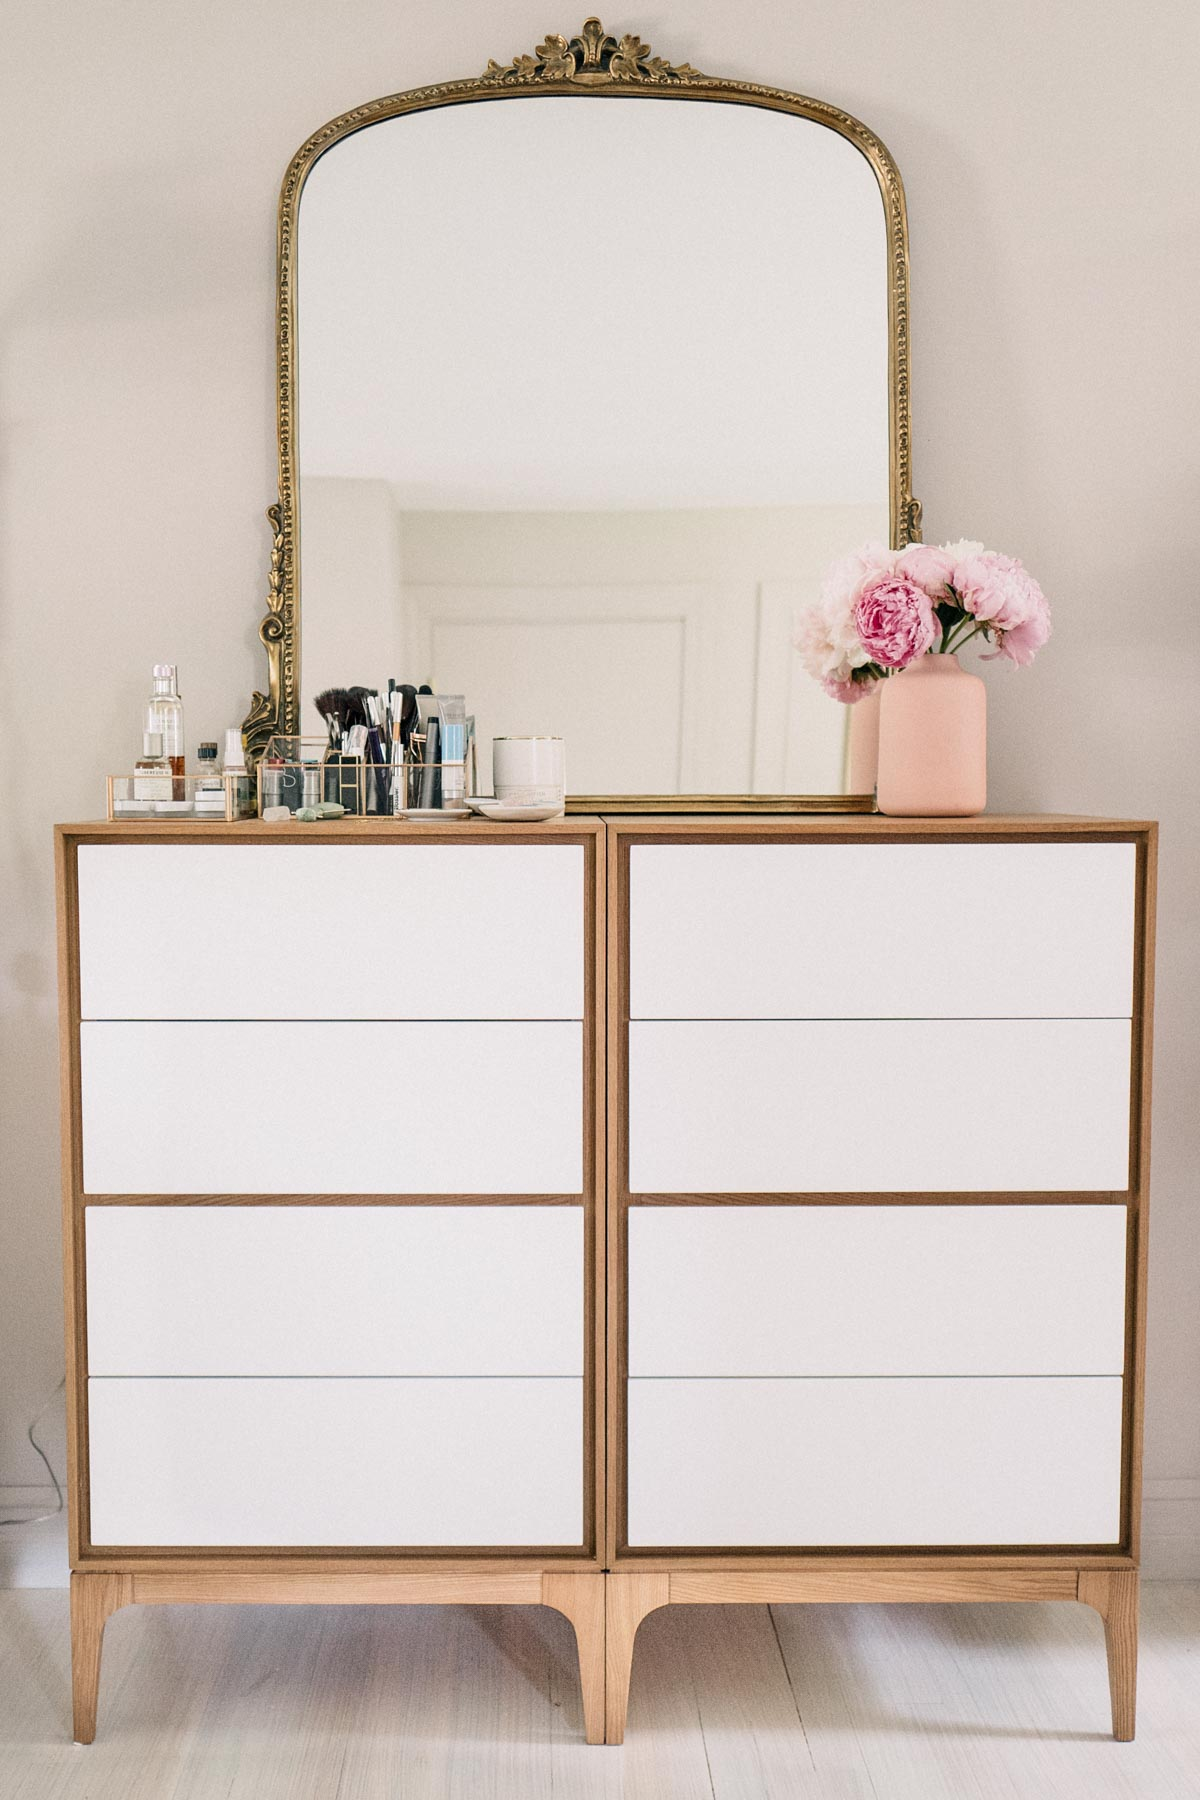 Jess Ann Kirby styles two Rove Convepts kure joren dressers for a vanity with double the storage space